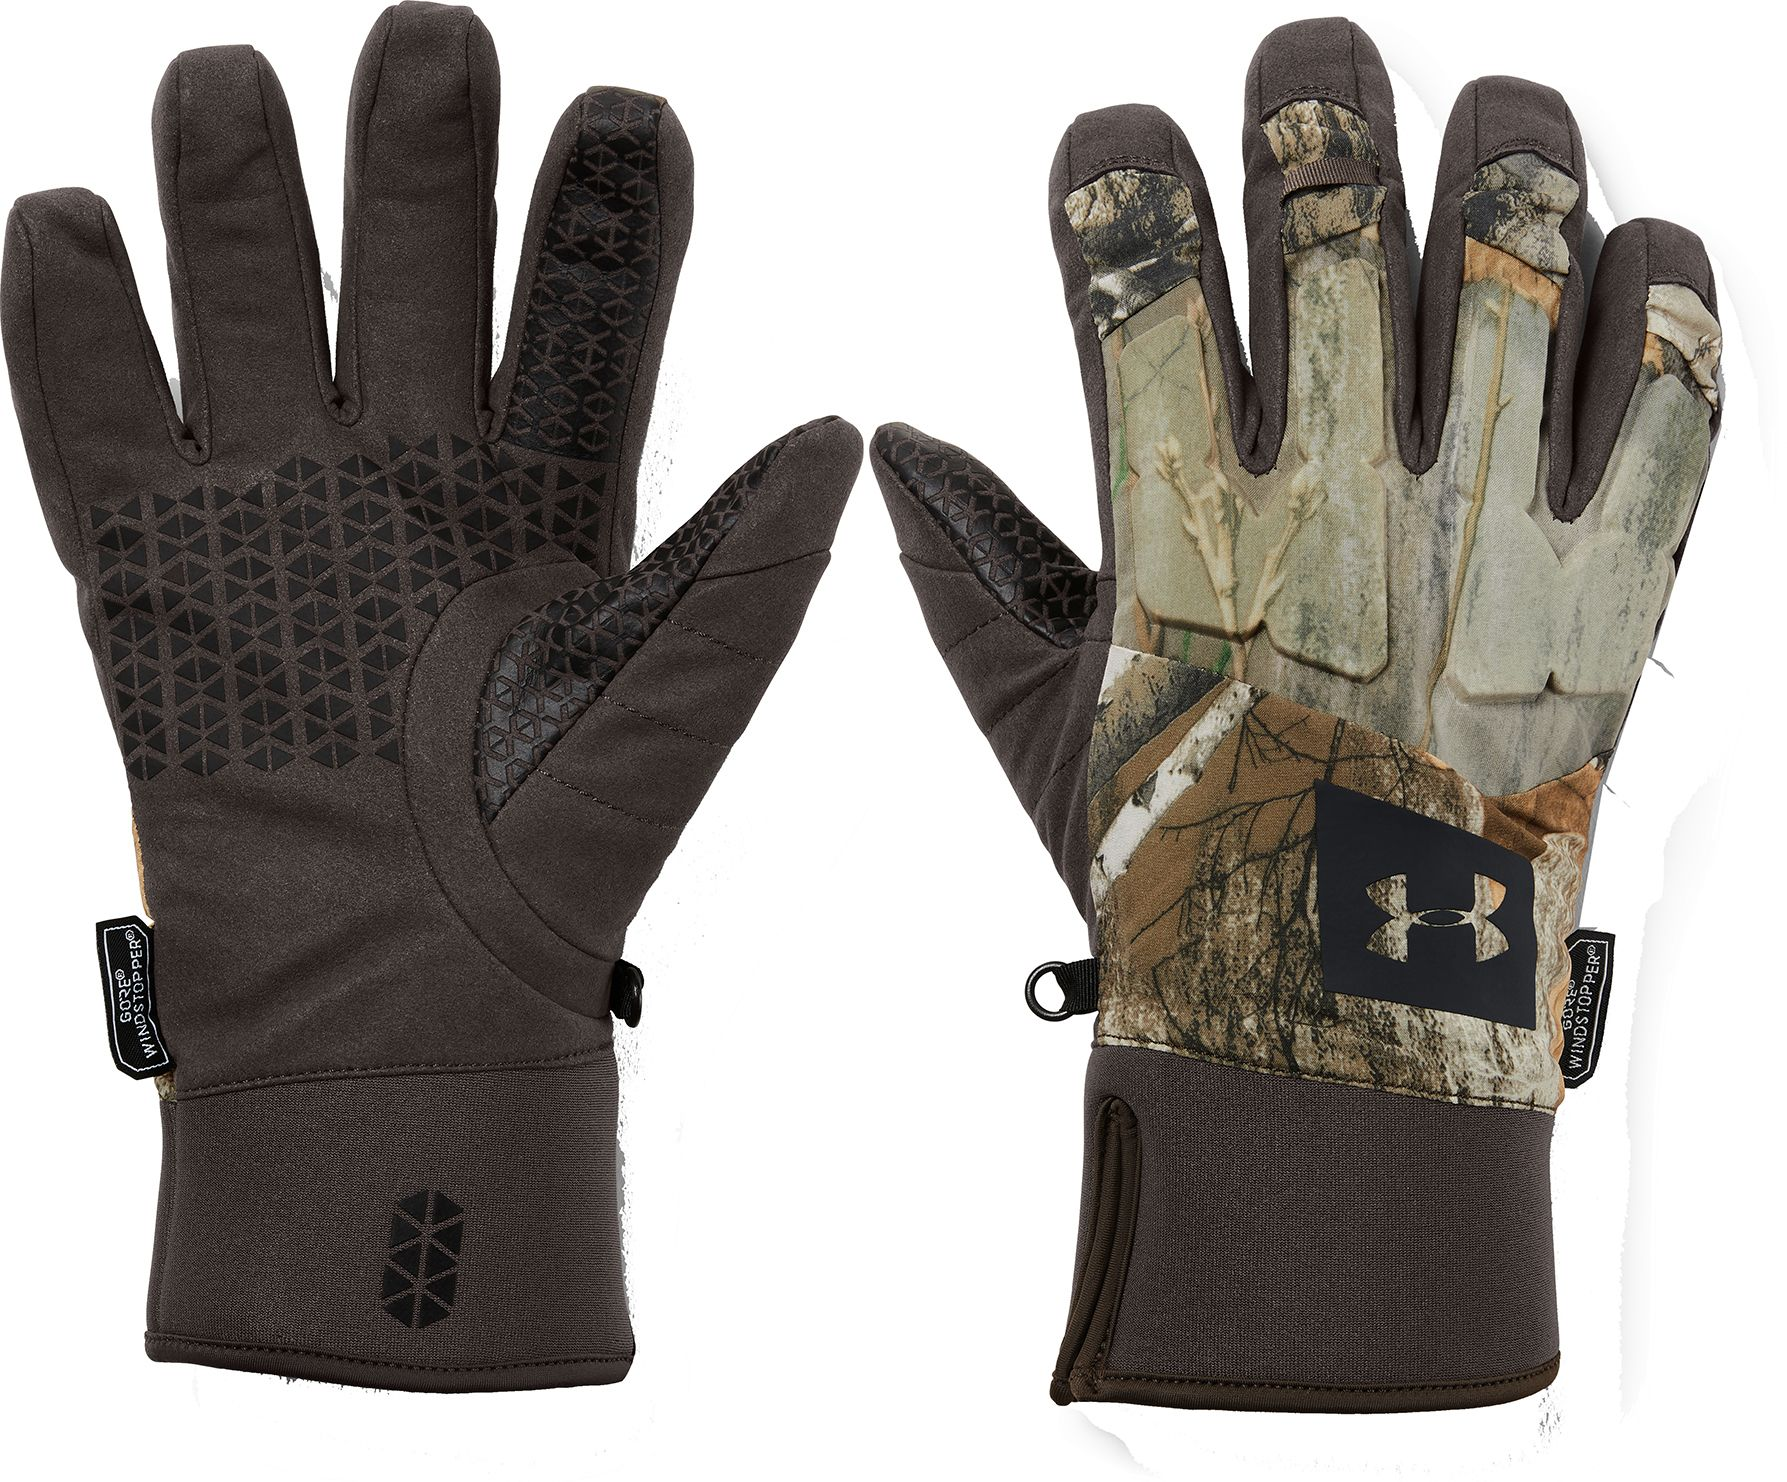 ed7359287a4f8 Under Armour Men's Mid Season Hunting Gloves | DICK'S Sporting ...